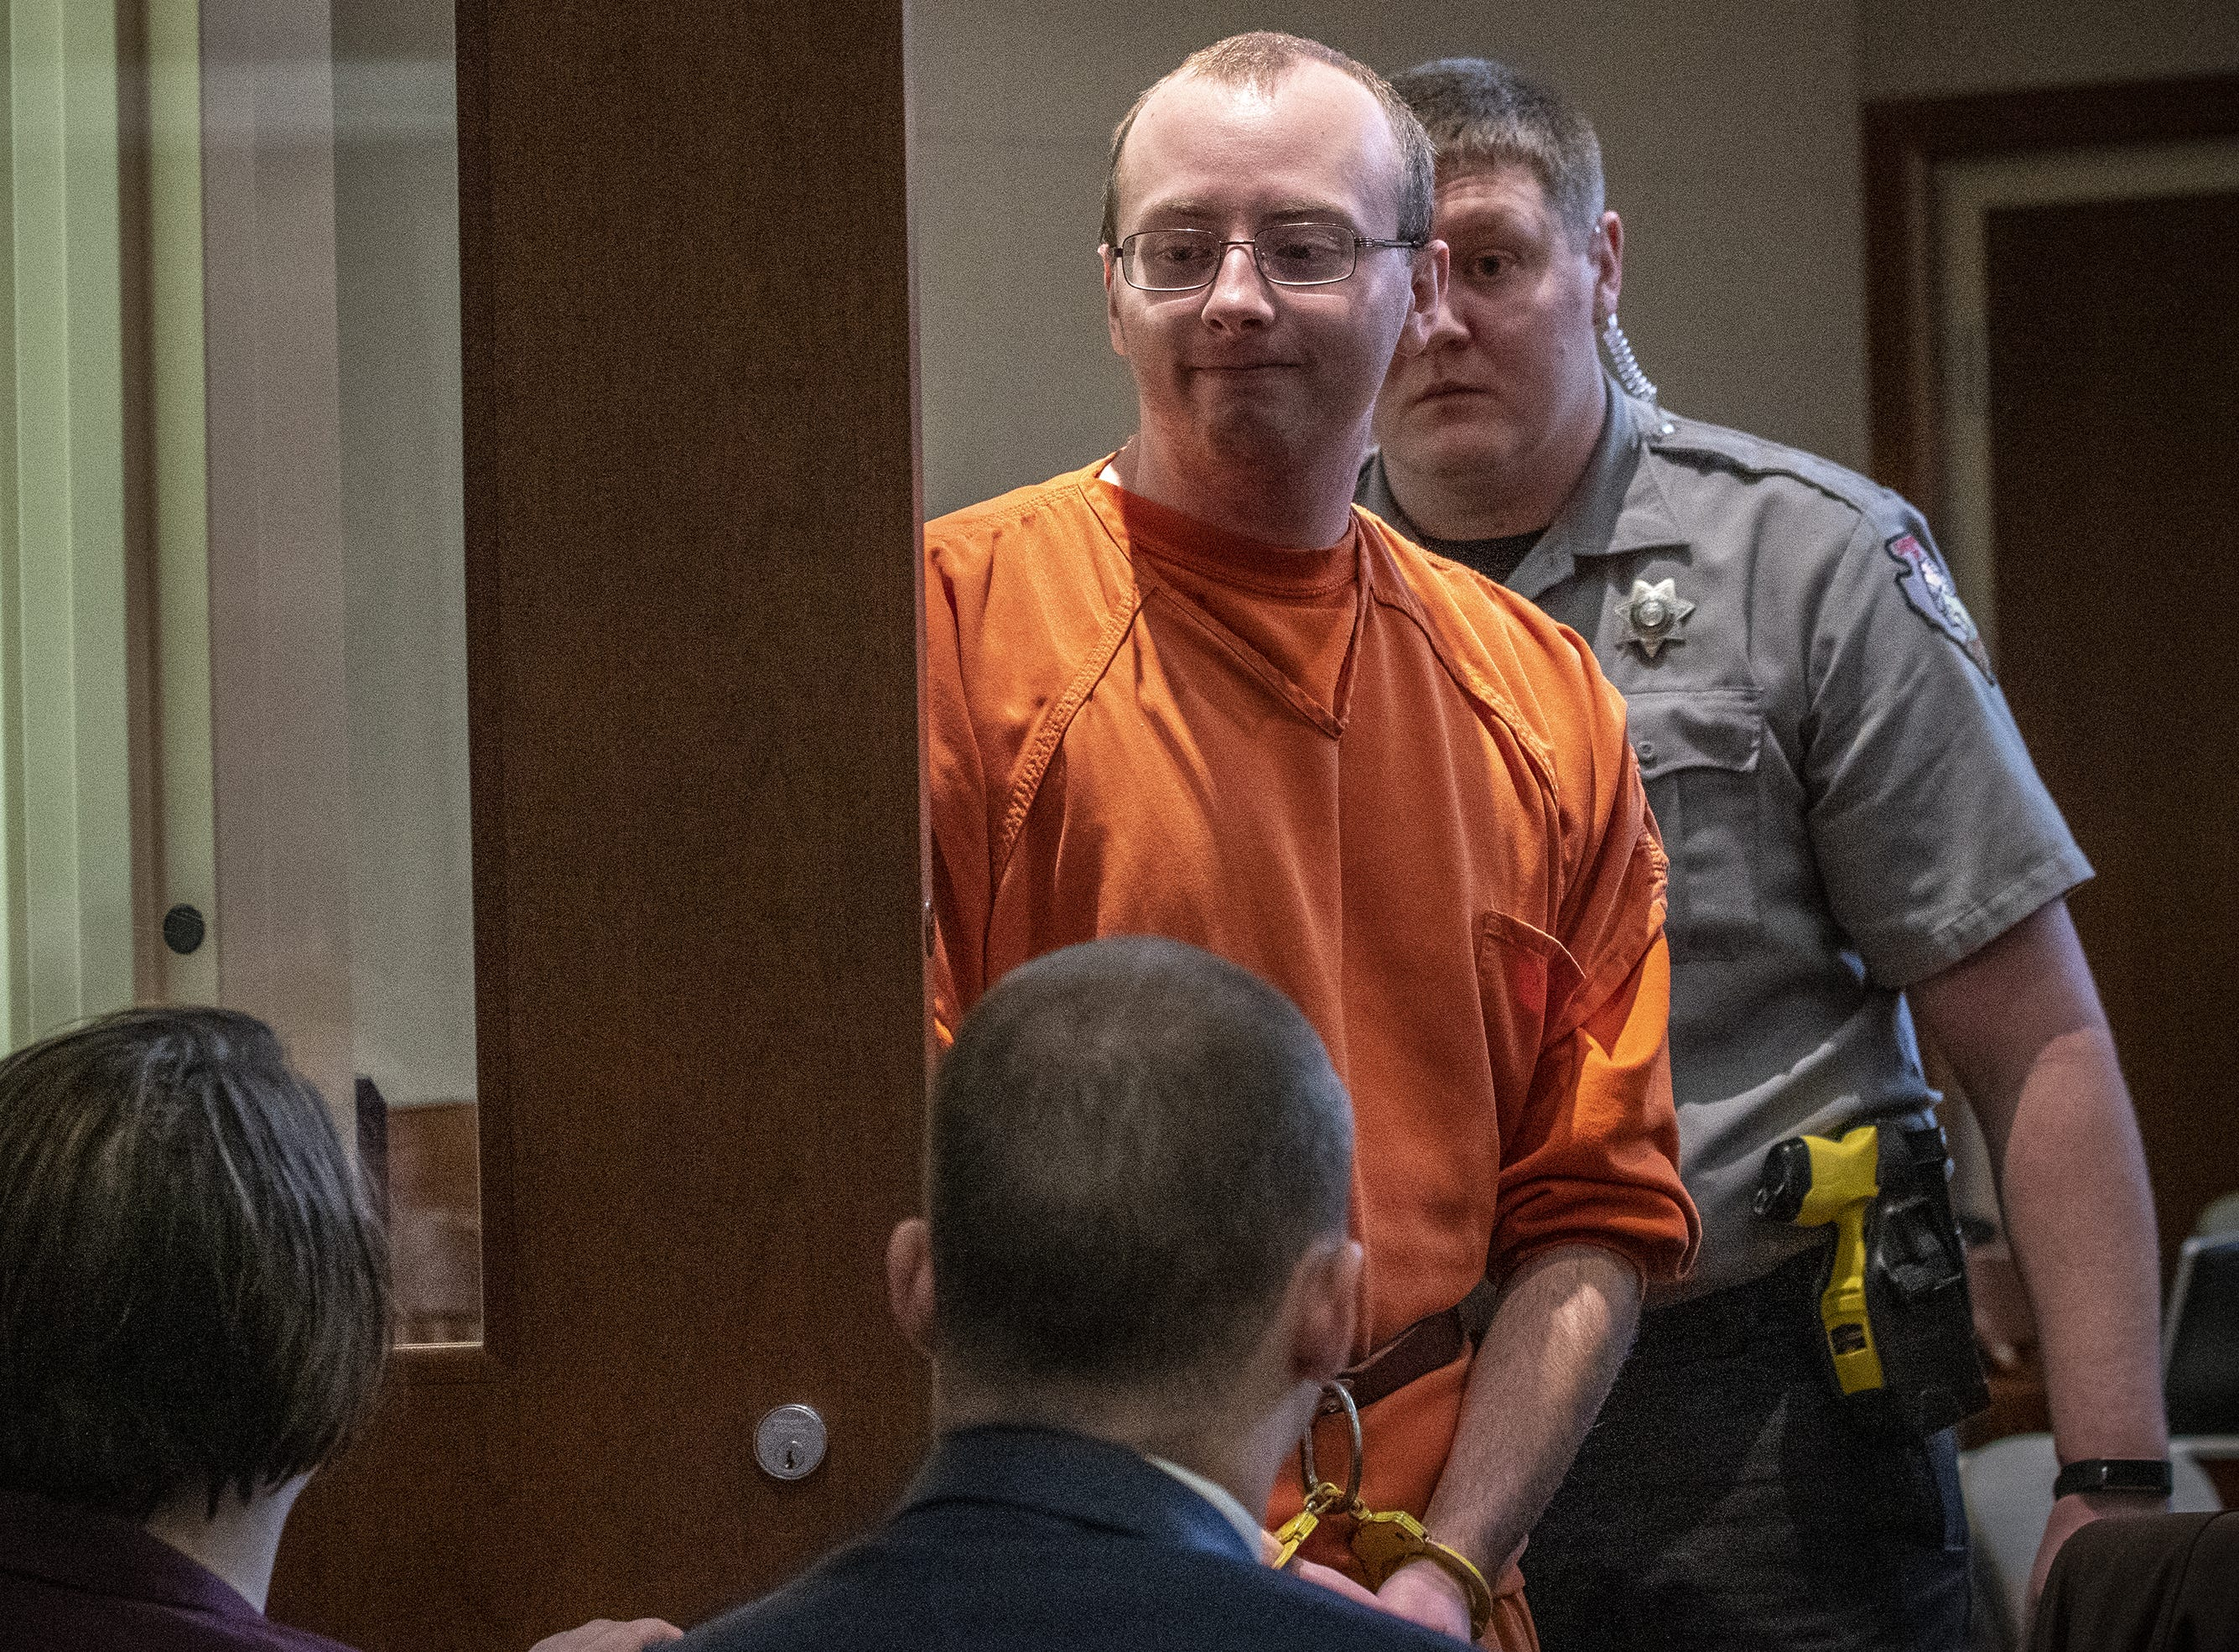 Accused Jayme Closs kidnapper Jake Patterson appears in court, waives preliminary hearing